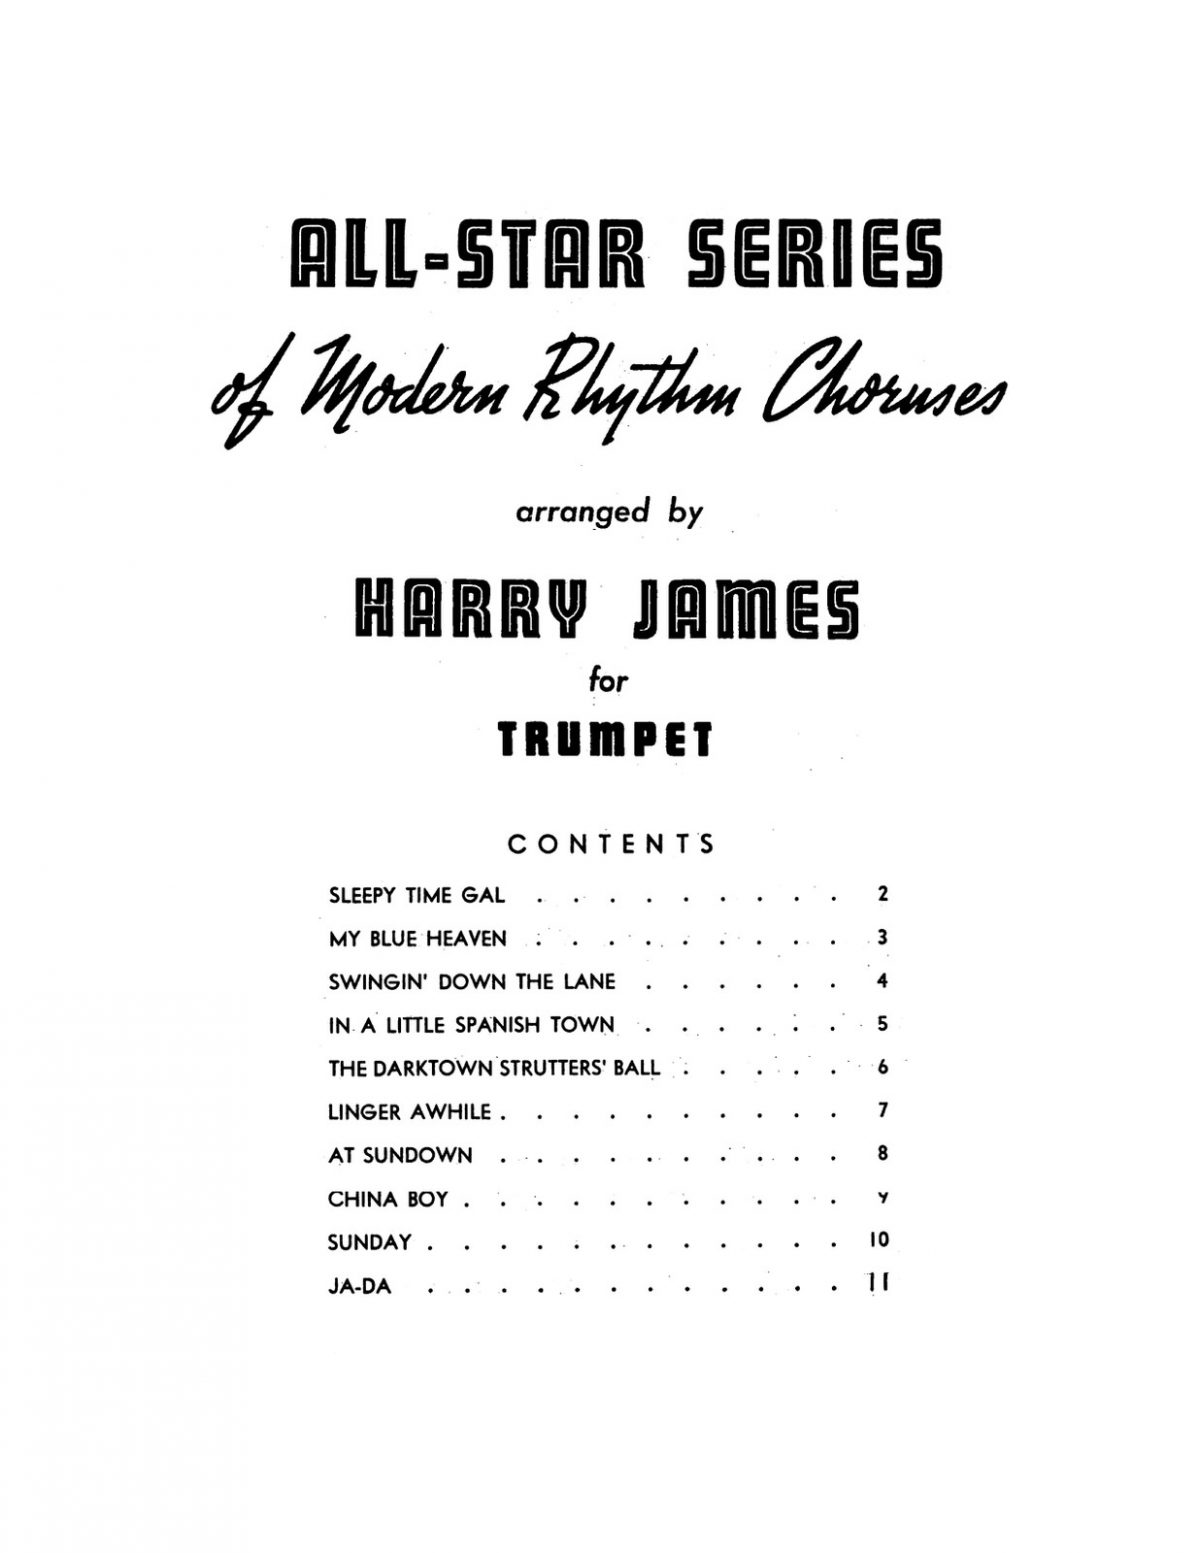 James, All Star Series of Modern Rhythm Choruses-p03